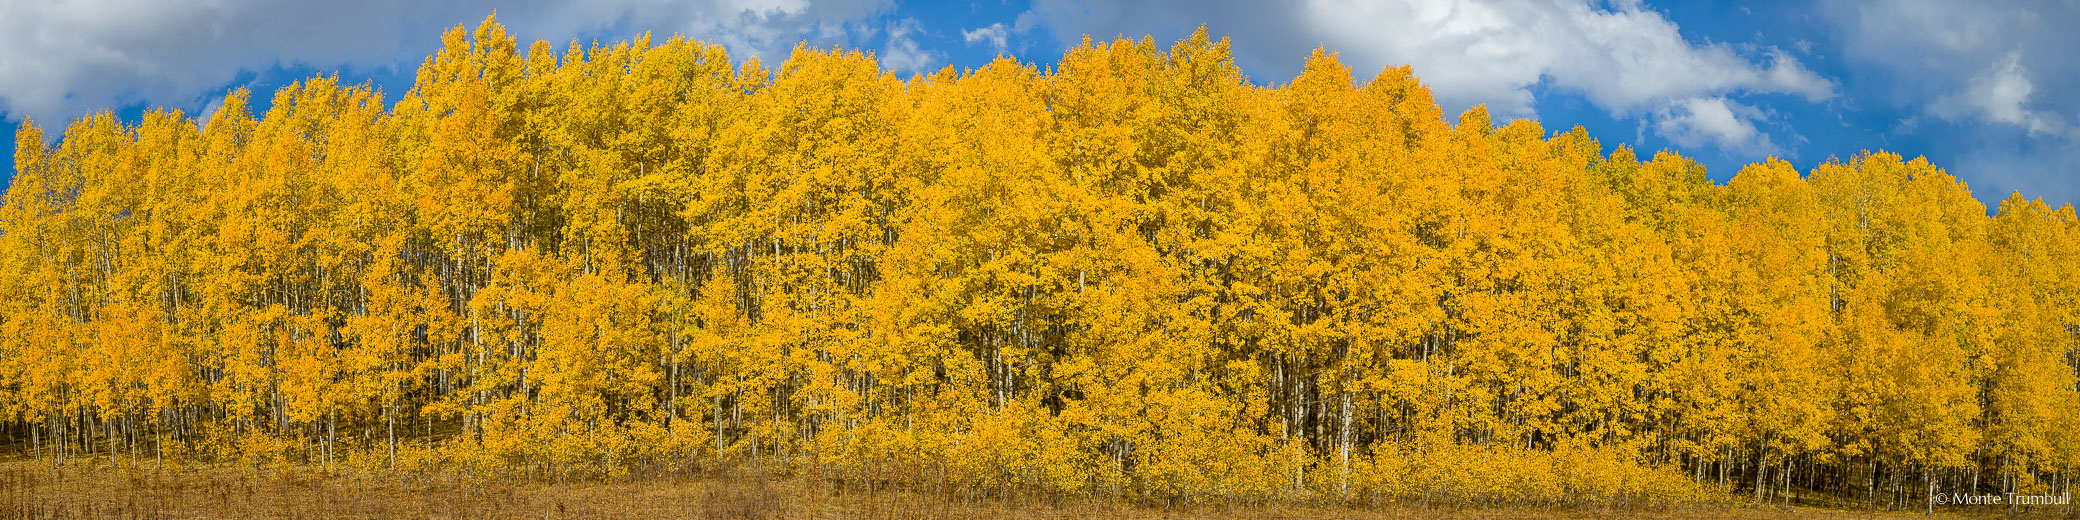 A panoramic view of golden aspen trees with blue skies and puffy white clouds overhead in the Gunnison National Forest west of Crested Butte, Colorado.